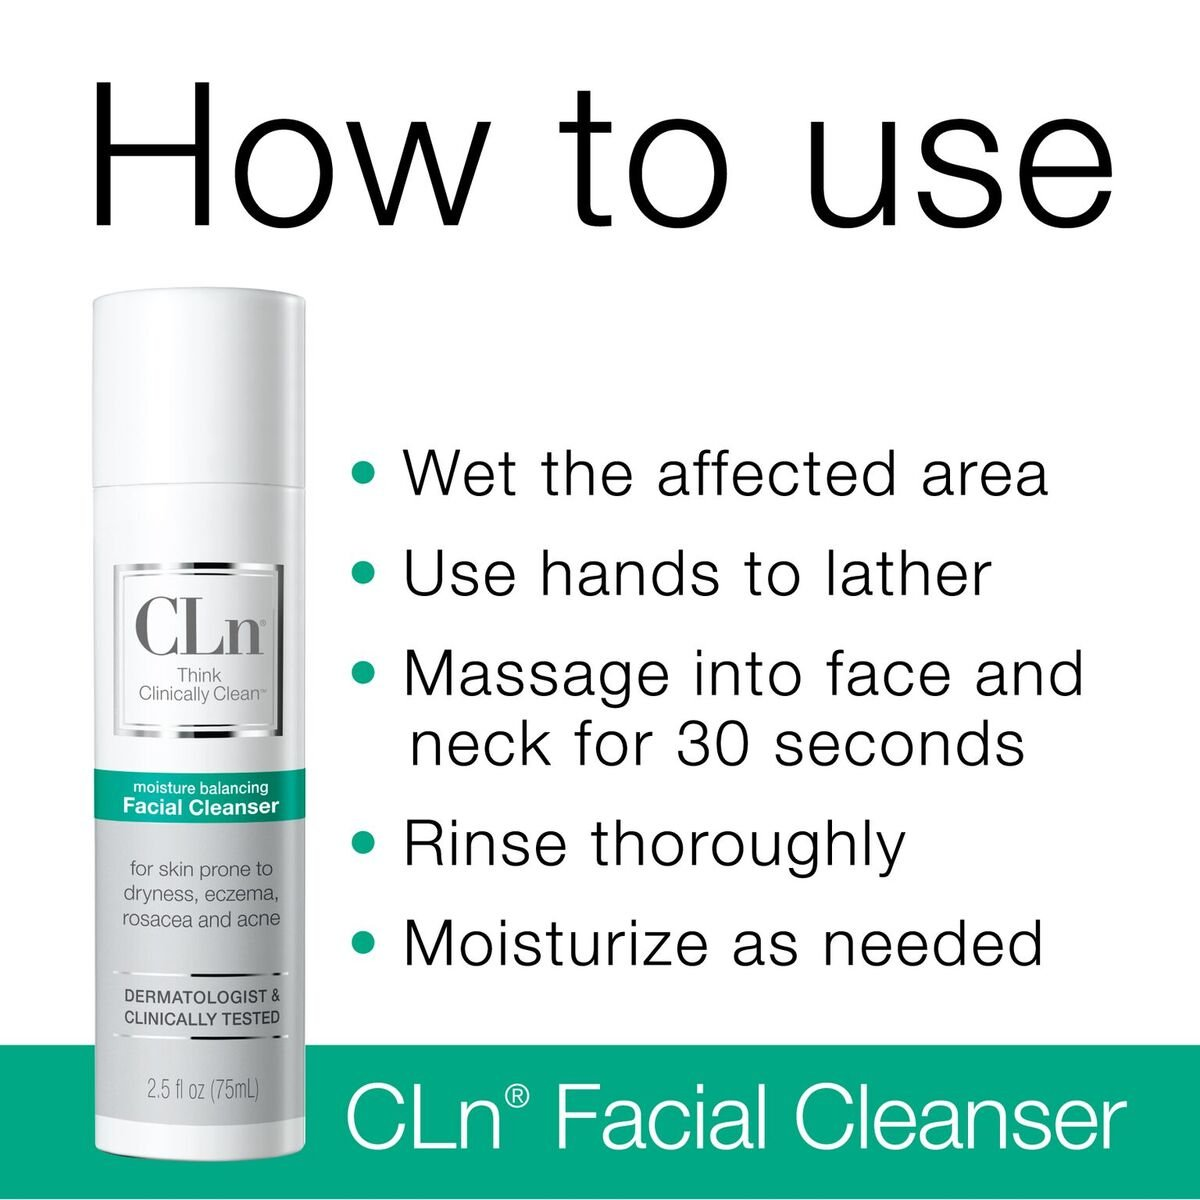 Amazon : Cln Facial Cleanser  Sensitive Skin Facial Cleanser, For Skin  Prone To Dryness, Eczema, Rosacea, And Acne  Designed For The Delicate Skin  Of